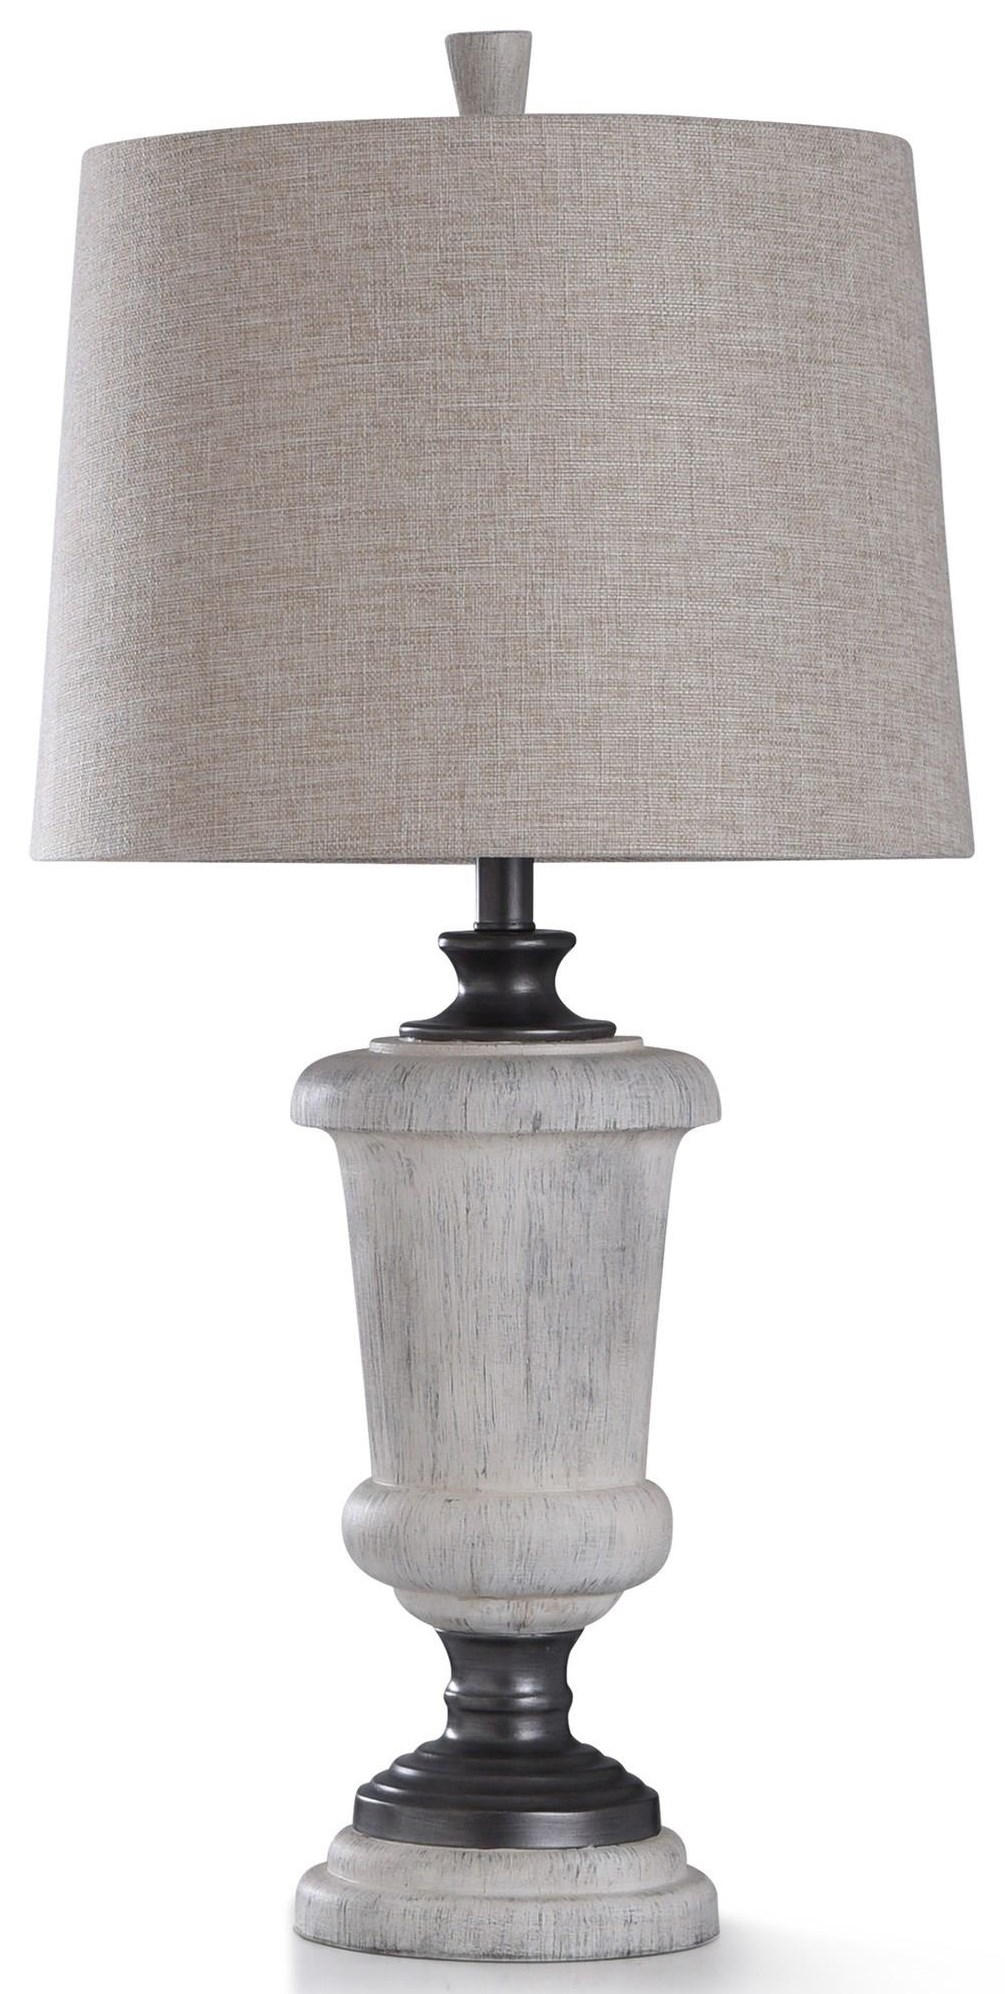 Lamps Cinder Table Lamp by StyleCraft at Walker's Furniture